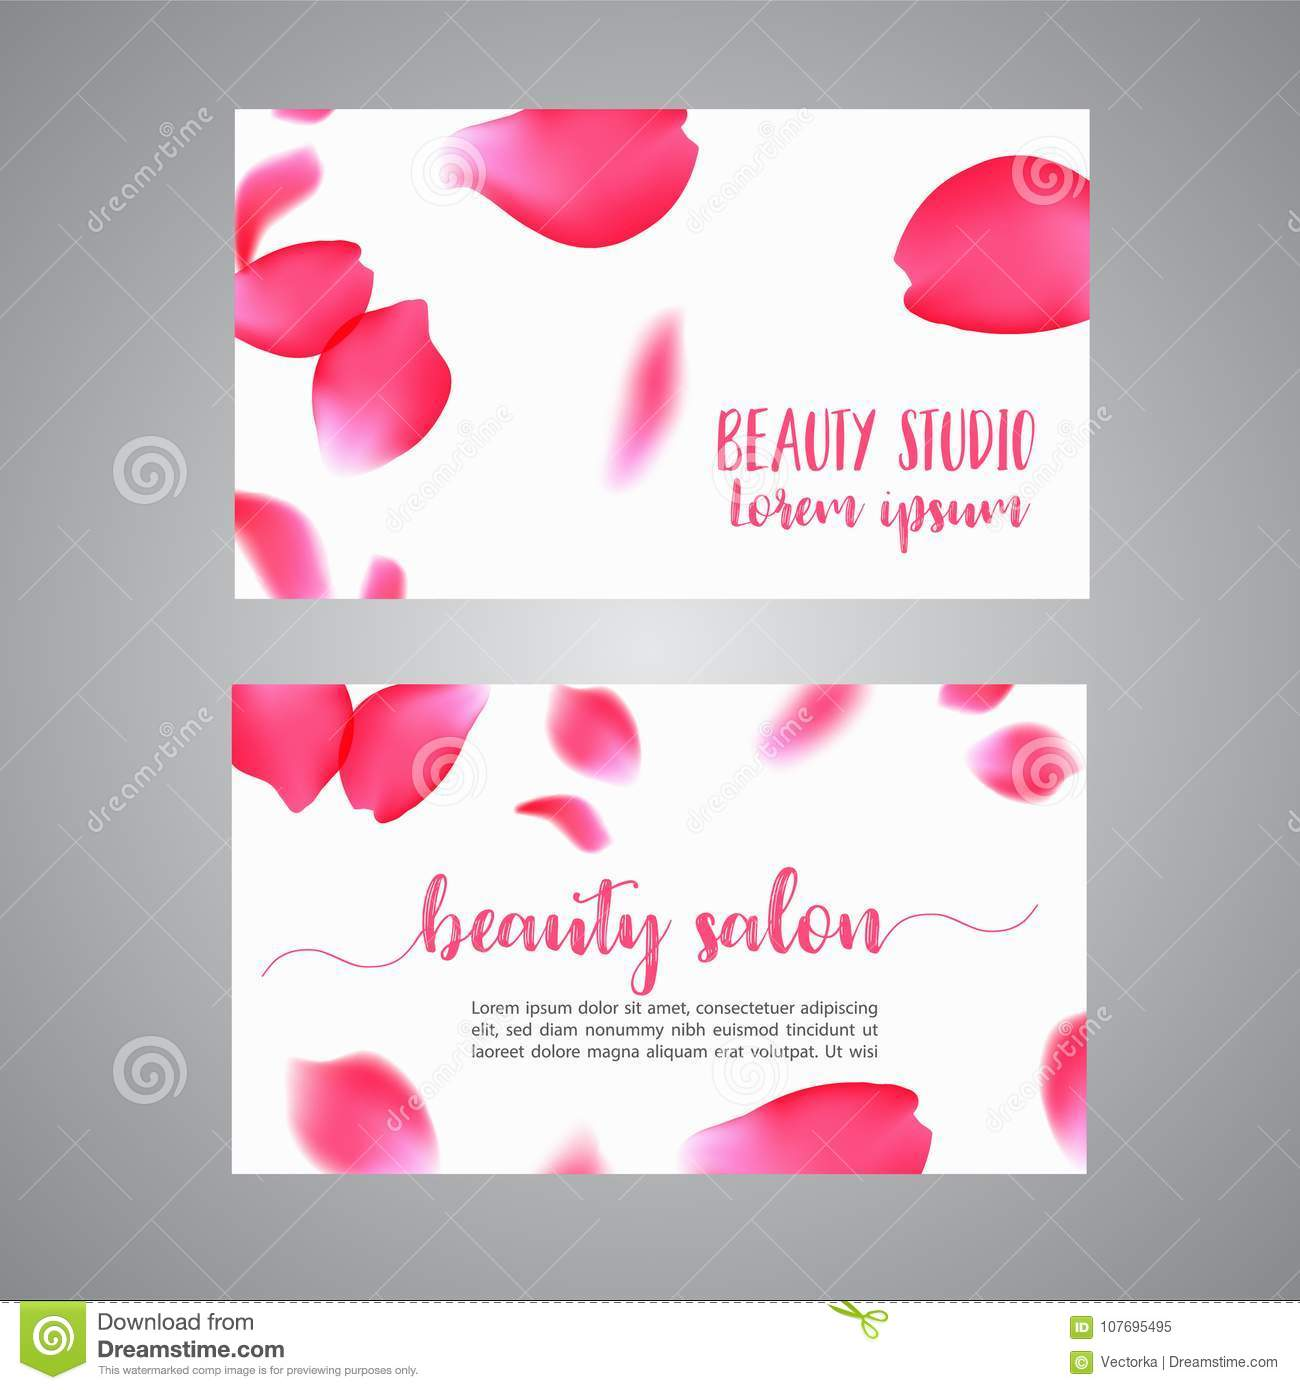 Vector Business Card Template With Rose Petals Floral Concept For